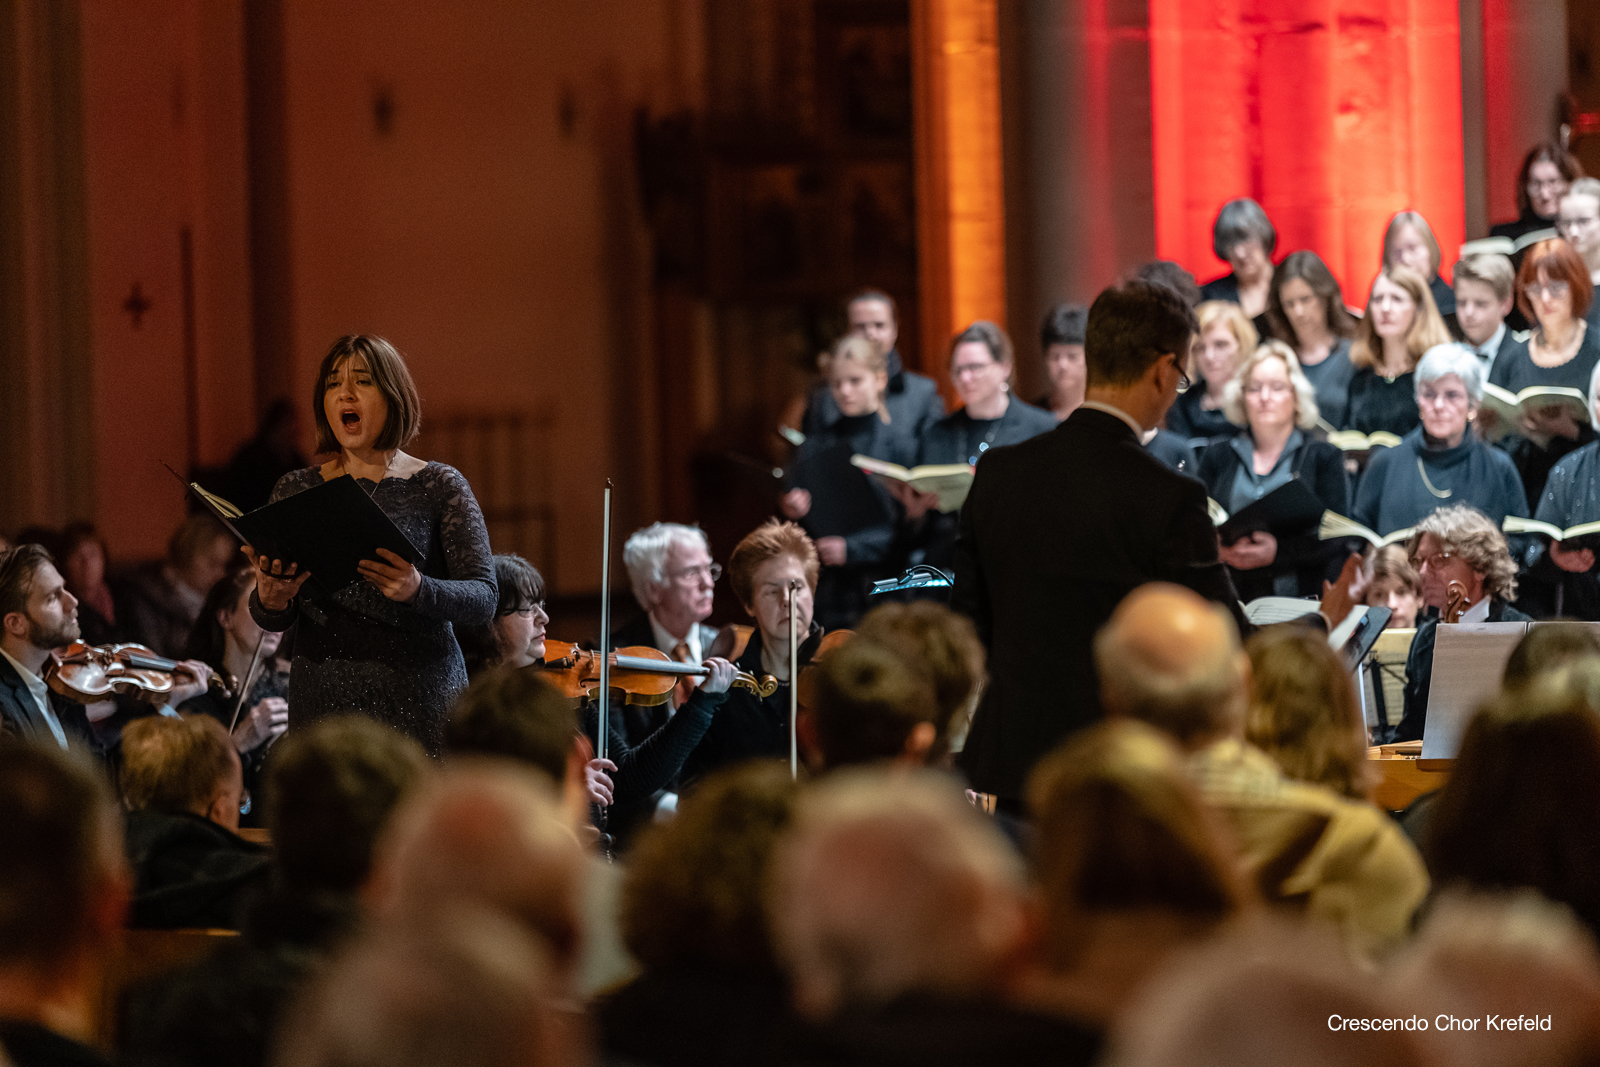 05_20191222_Crescendo_Chor_Krefeld_Messiah_054